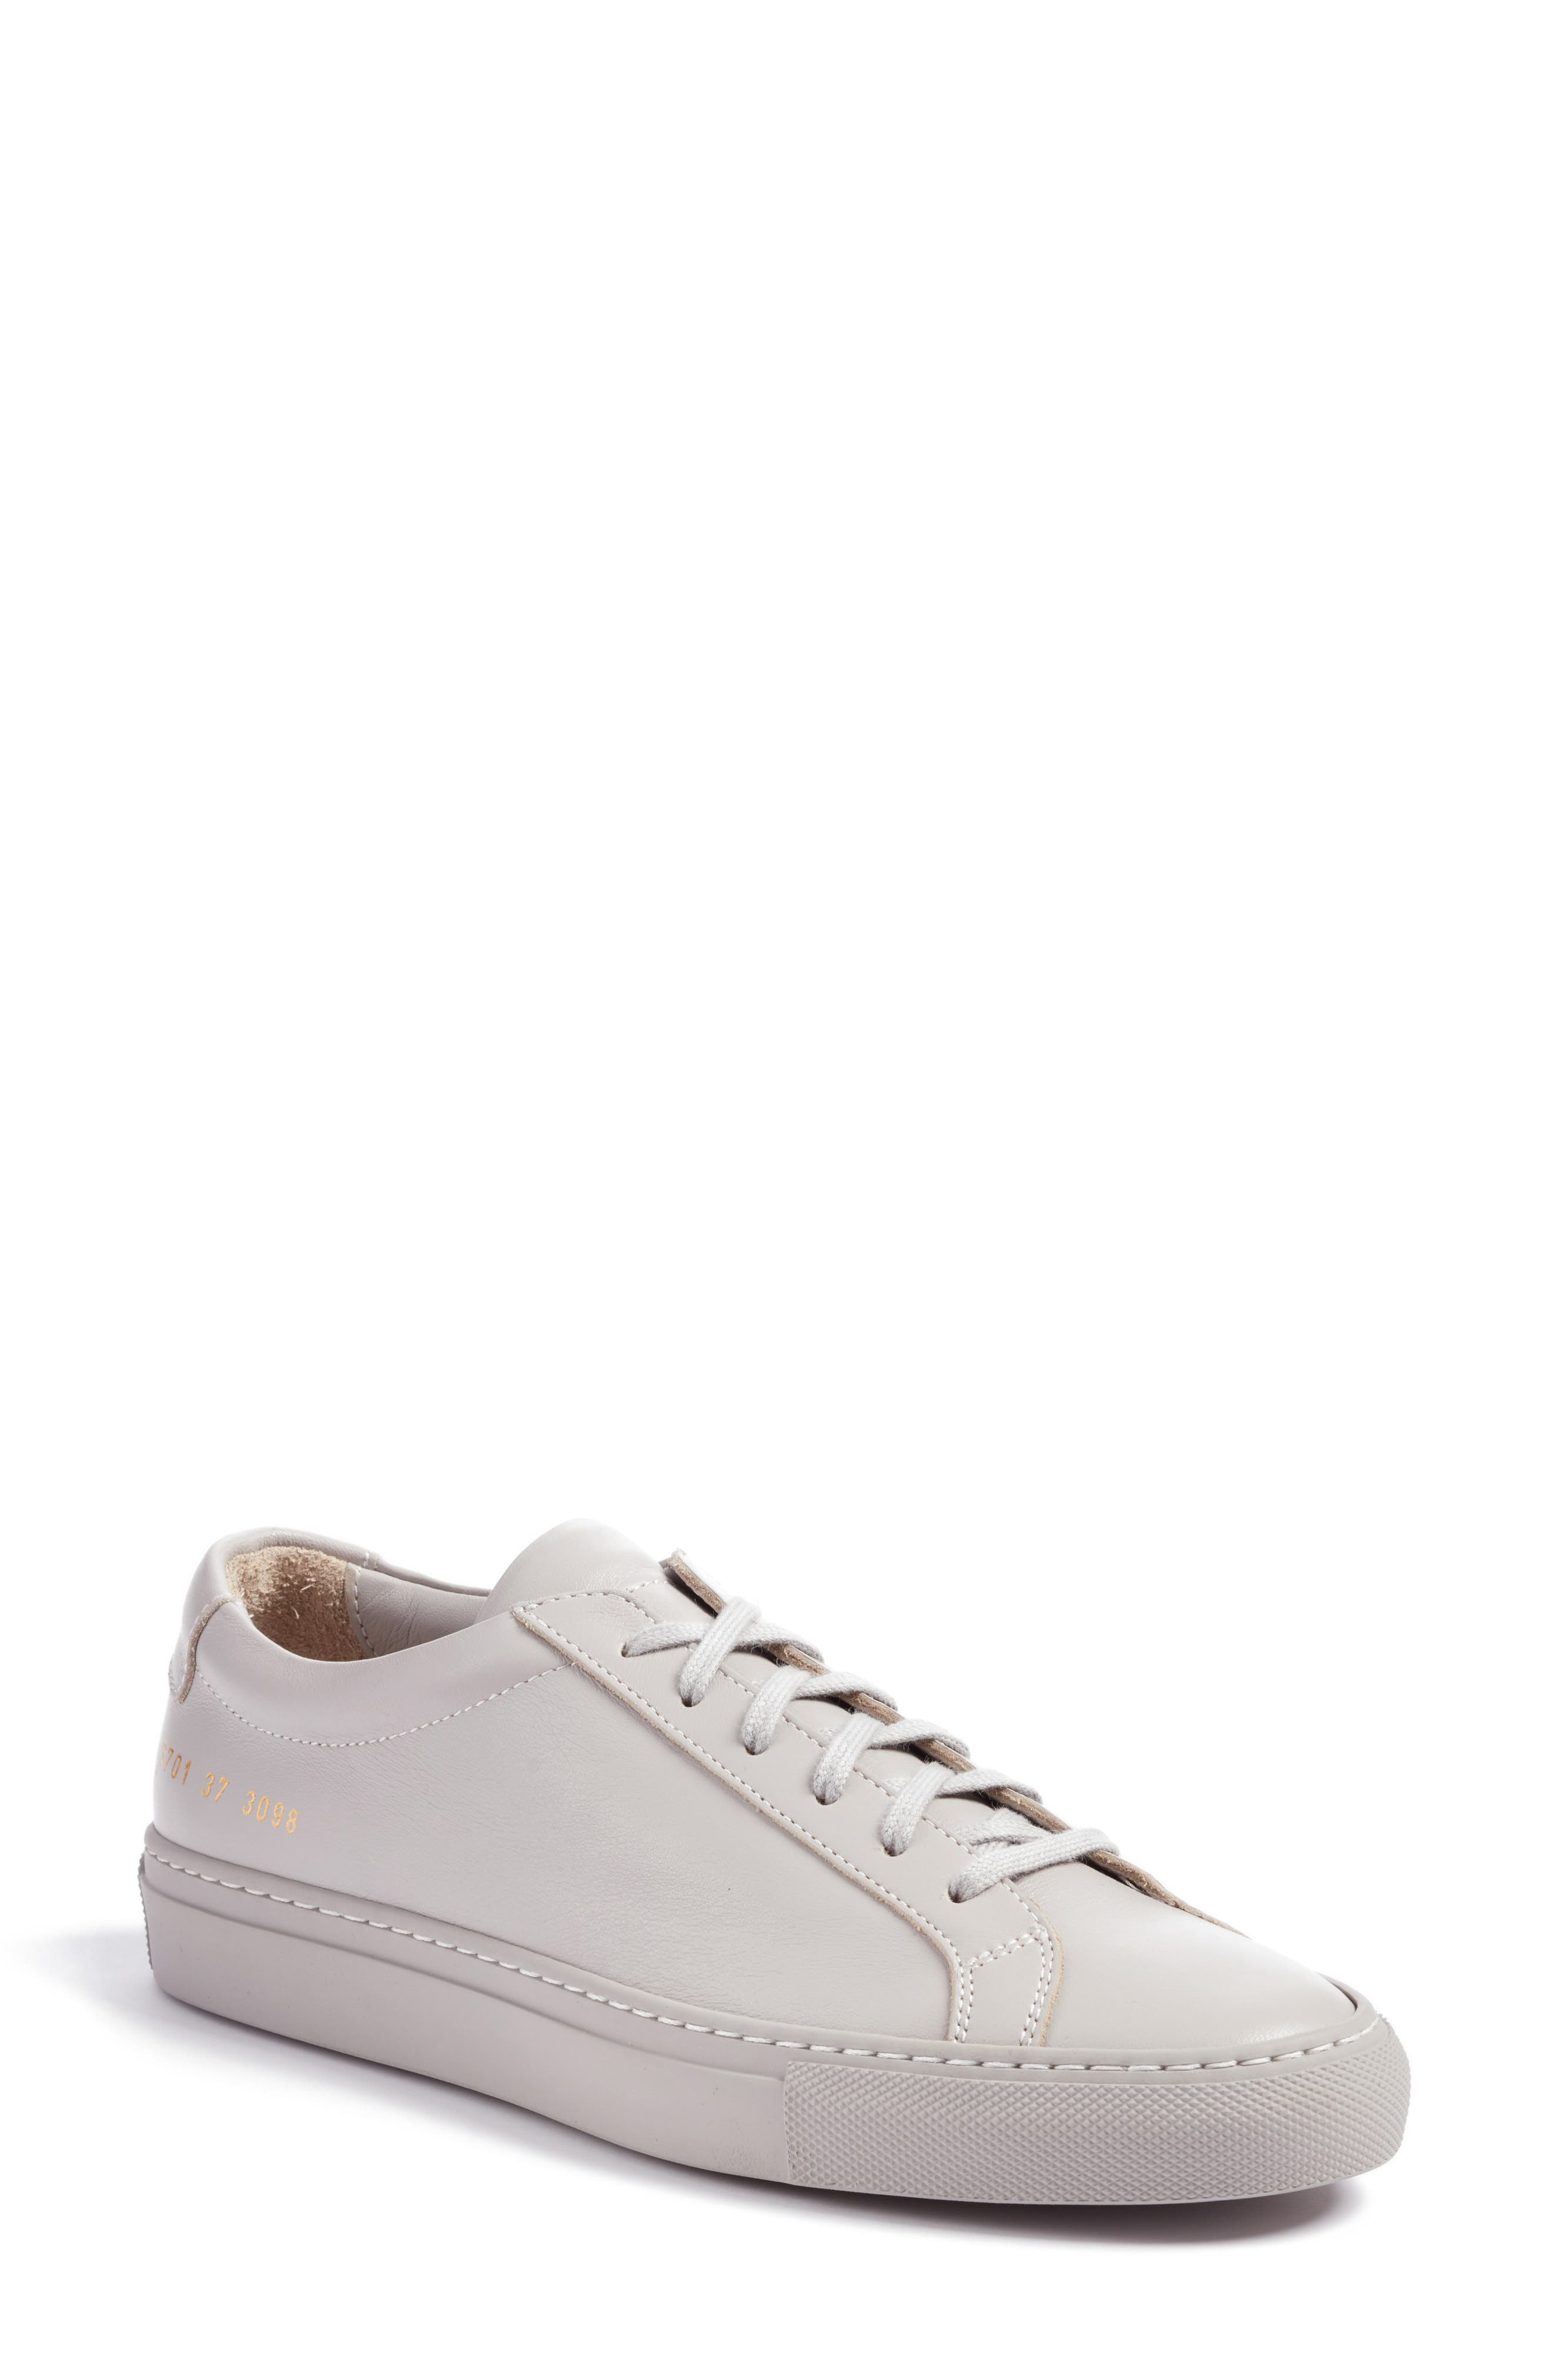 Alternate Image 1 Selected - Common Projects Original Achilles Sneaker (Women)